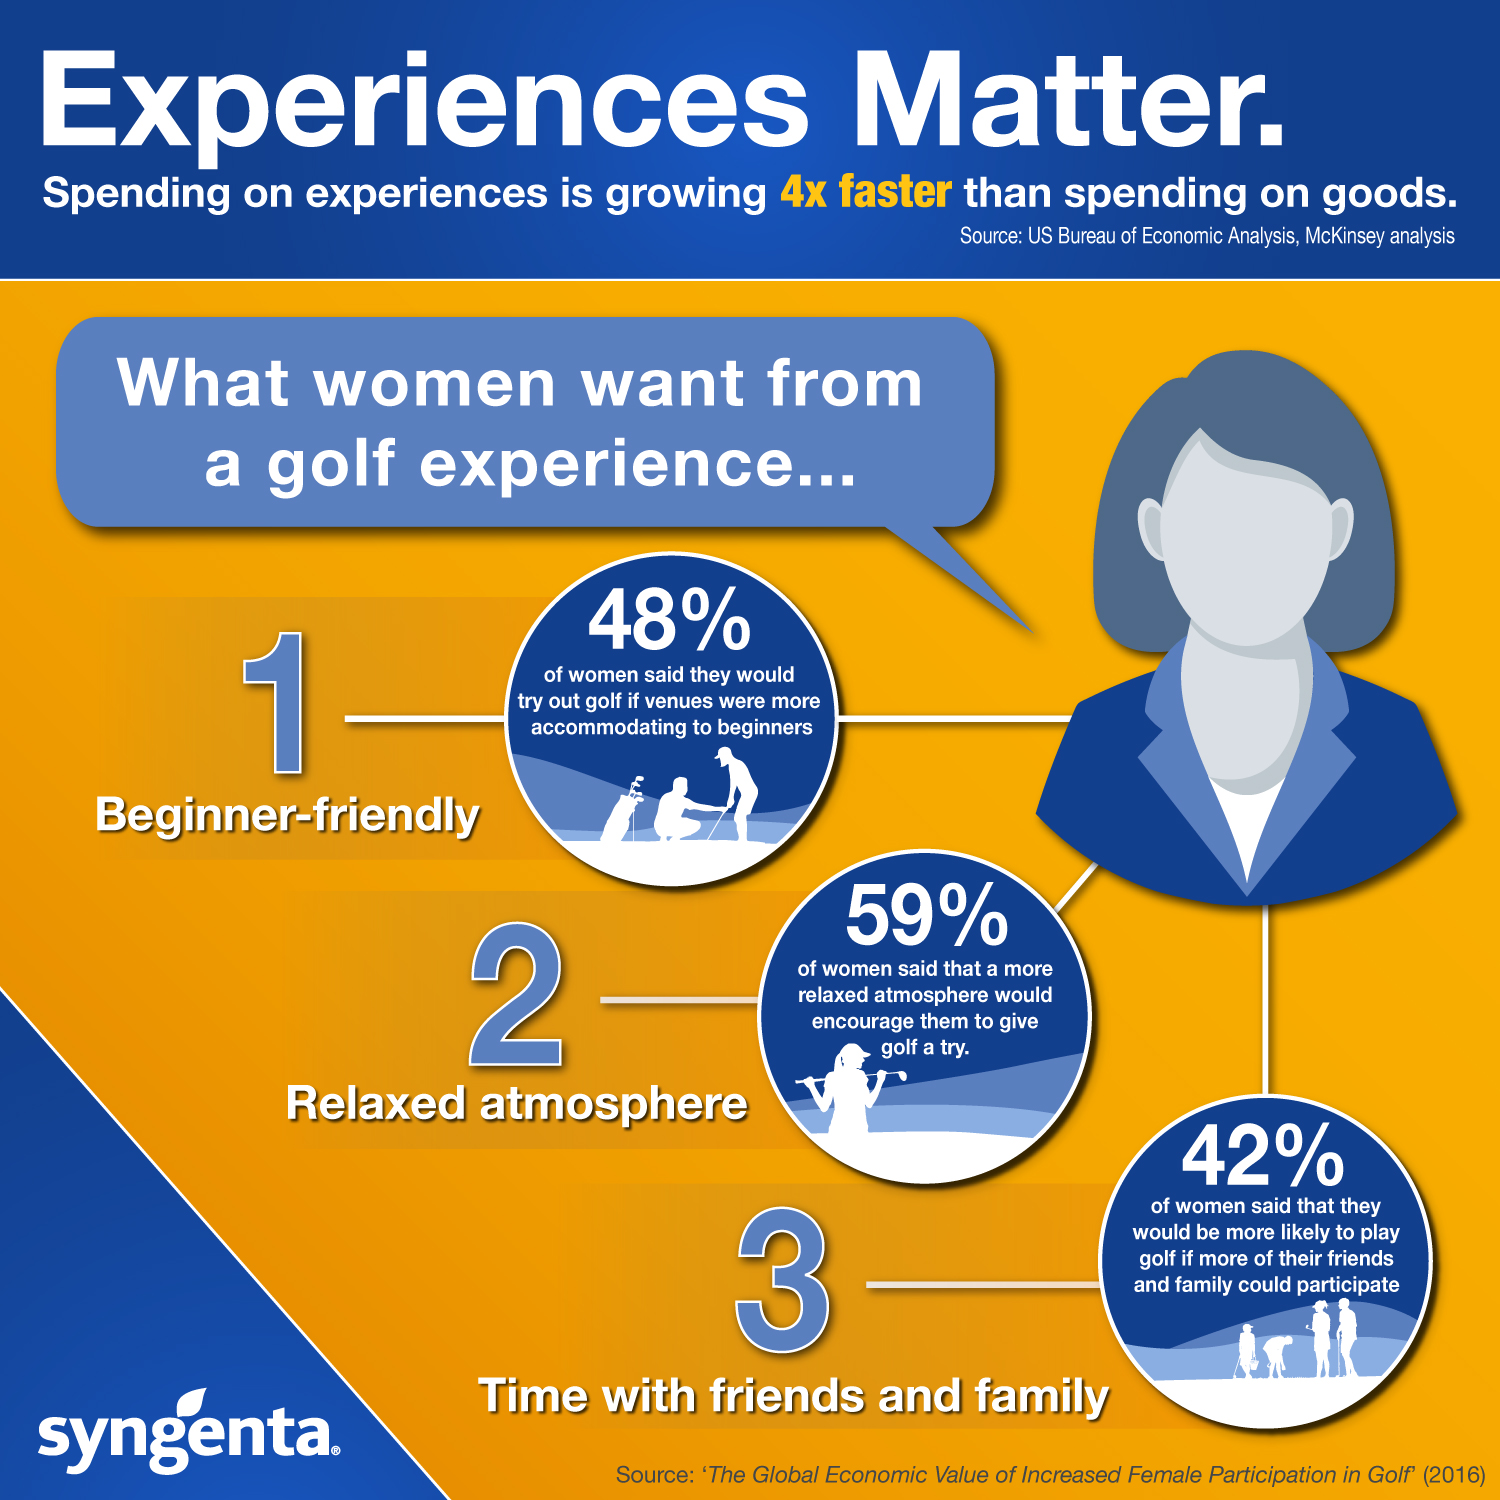 Delivering golf experiences to women